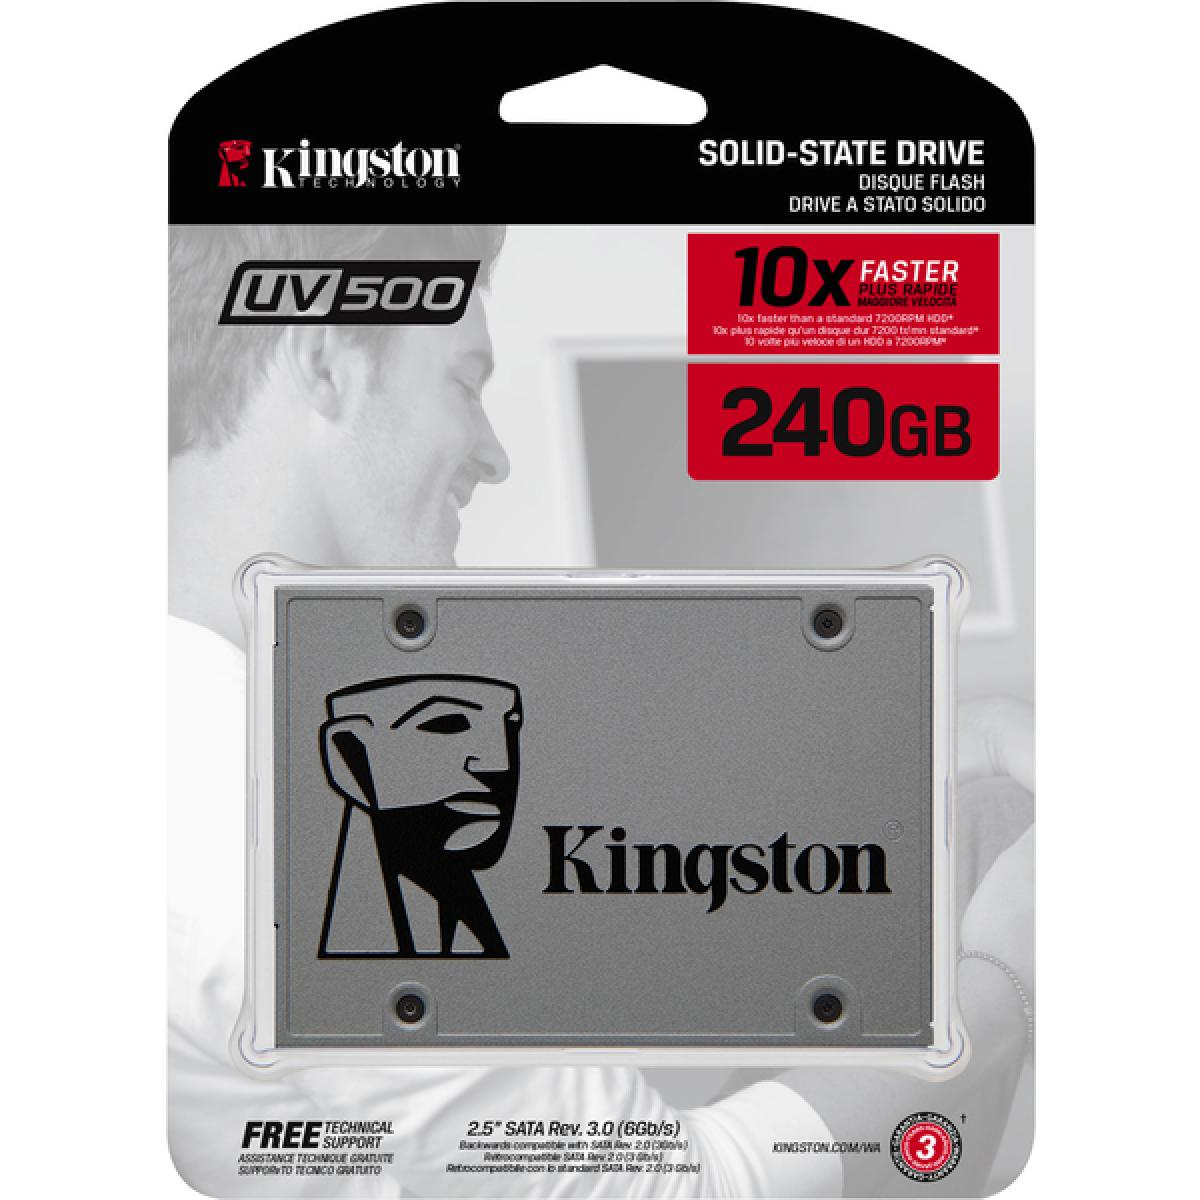 KINGSTON UV500 240GB SSD 2.5''